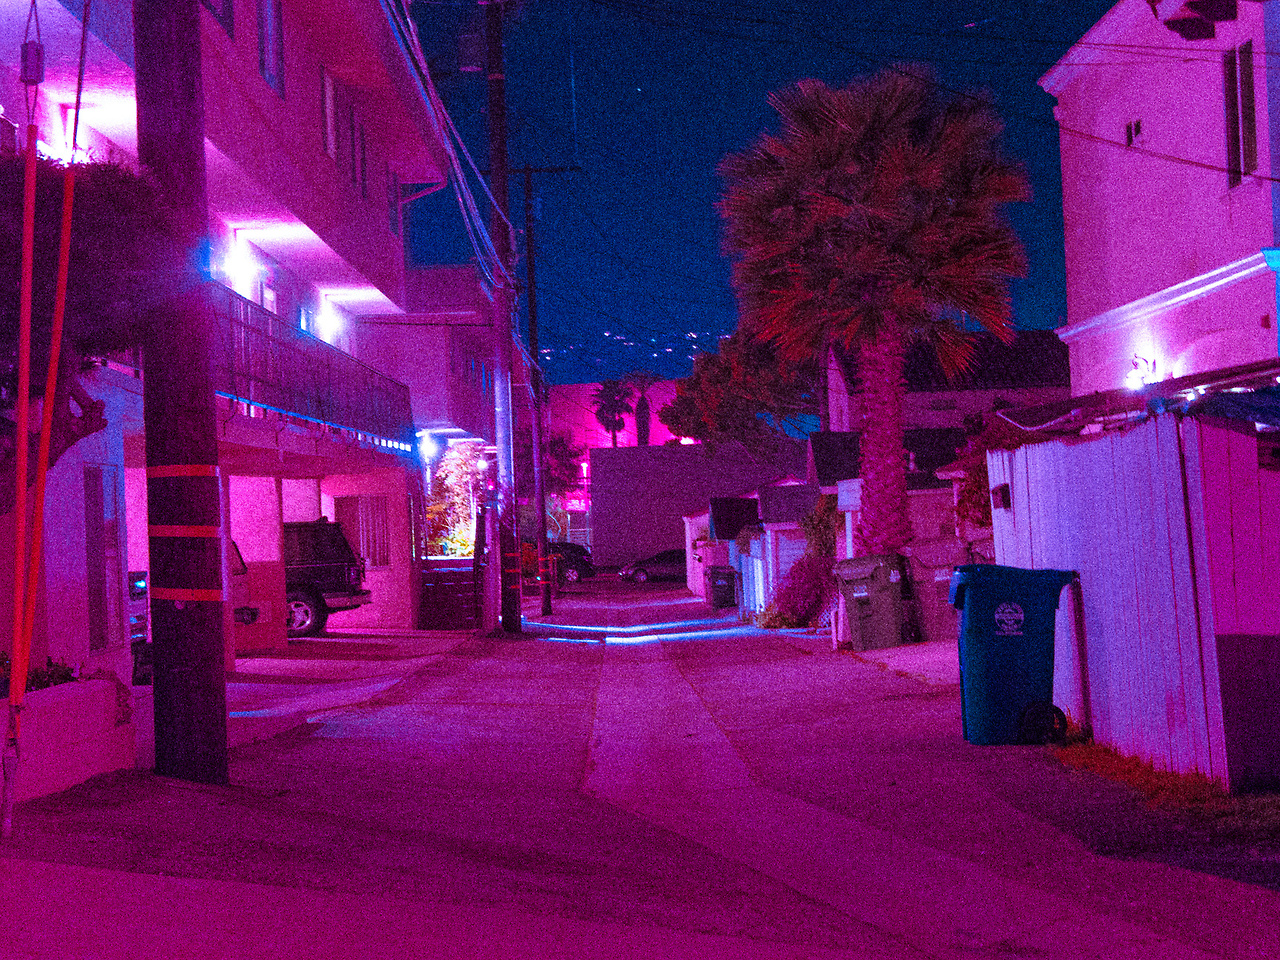 streets nigth, fluo, flow-art-station, los angeles, photography, neon, surreal, asthetic, colors, nostalgy, magenta